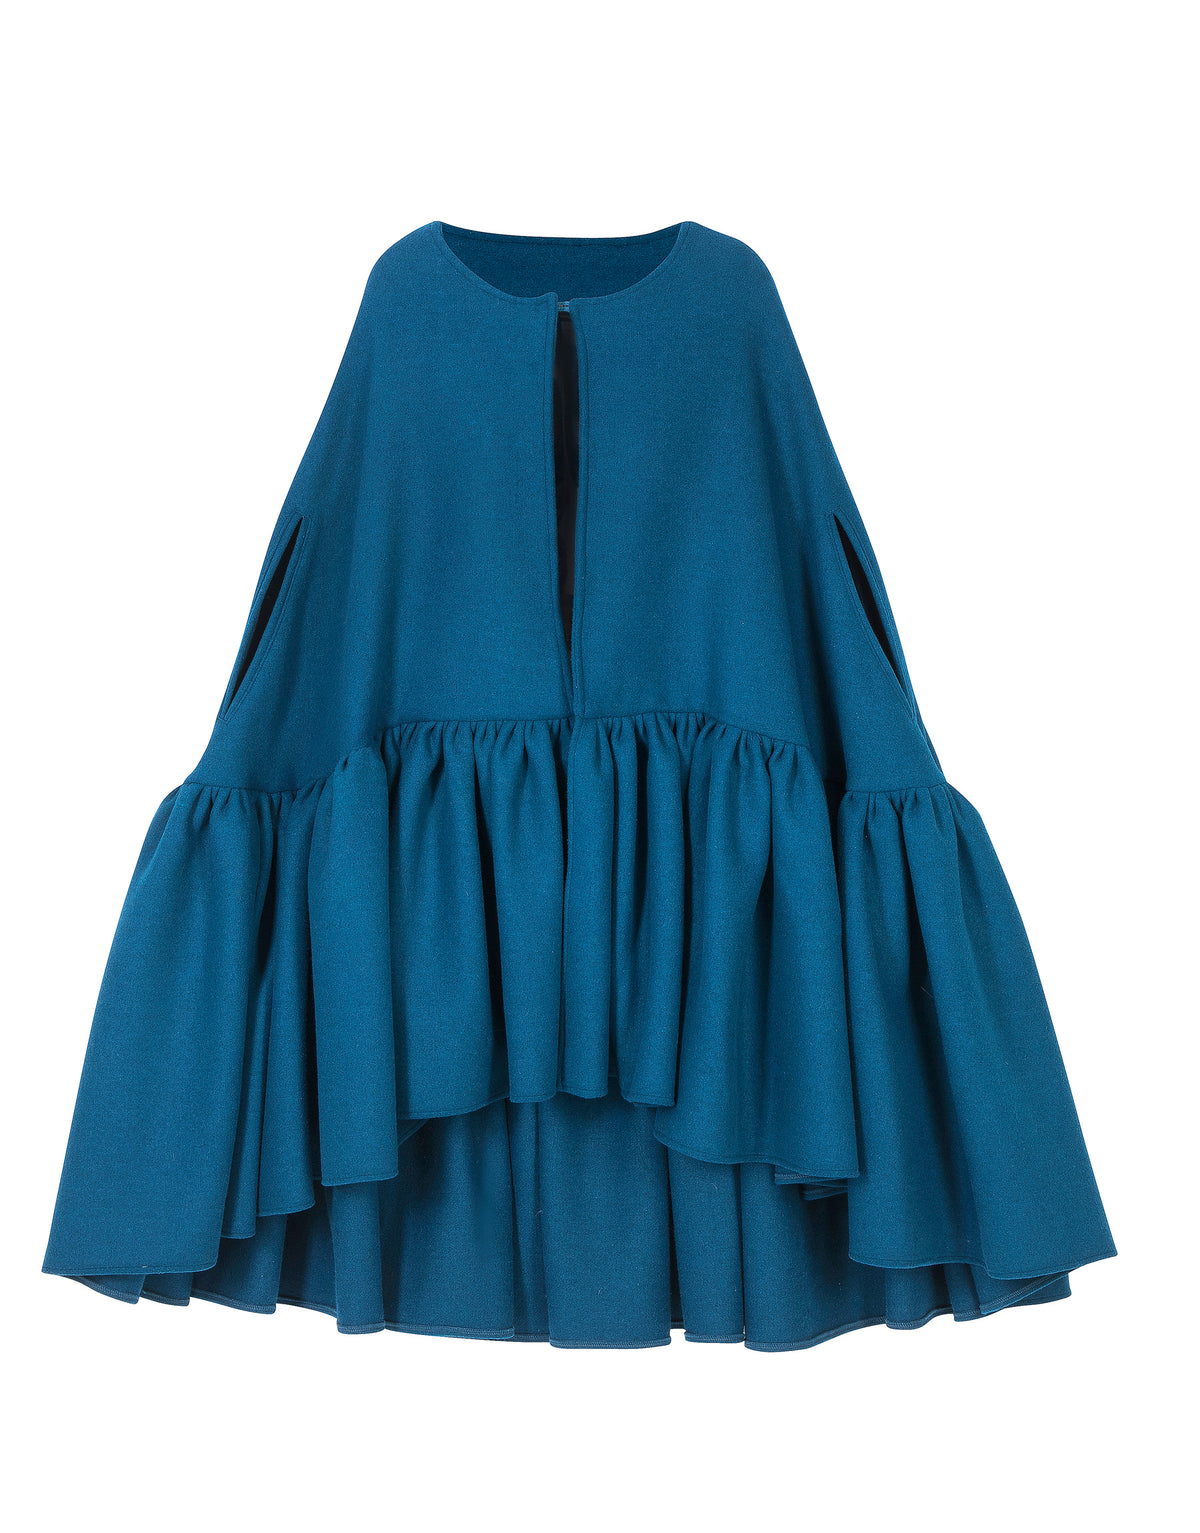 Ruffle Trim Cape